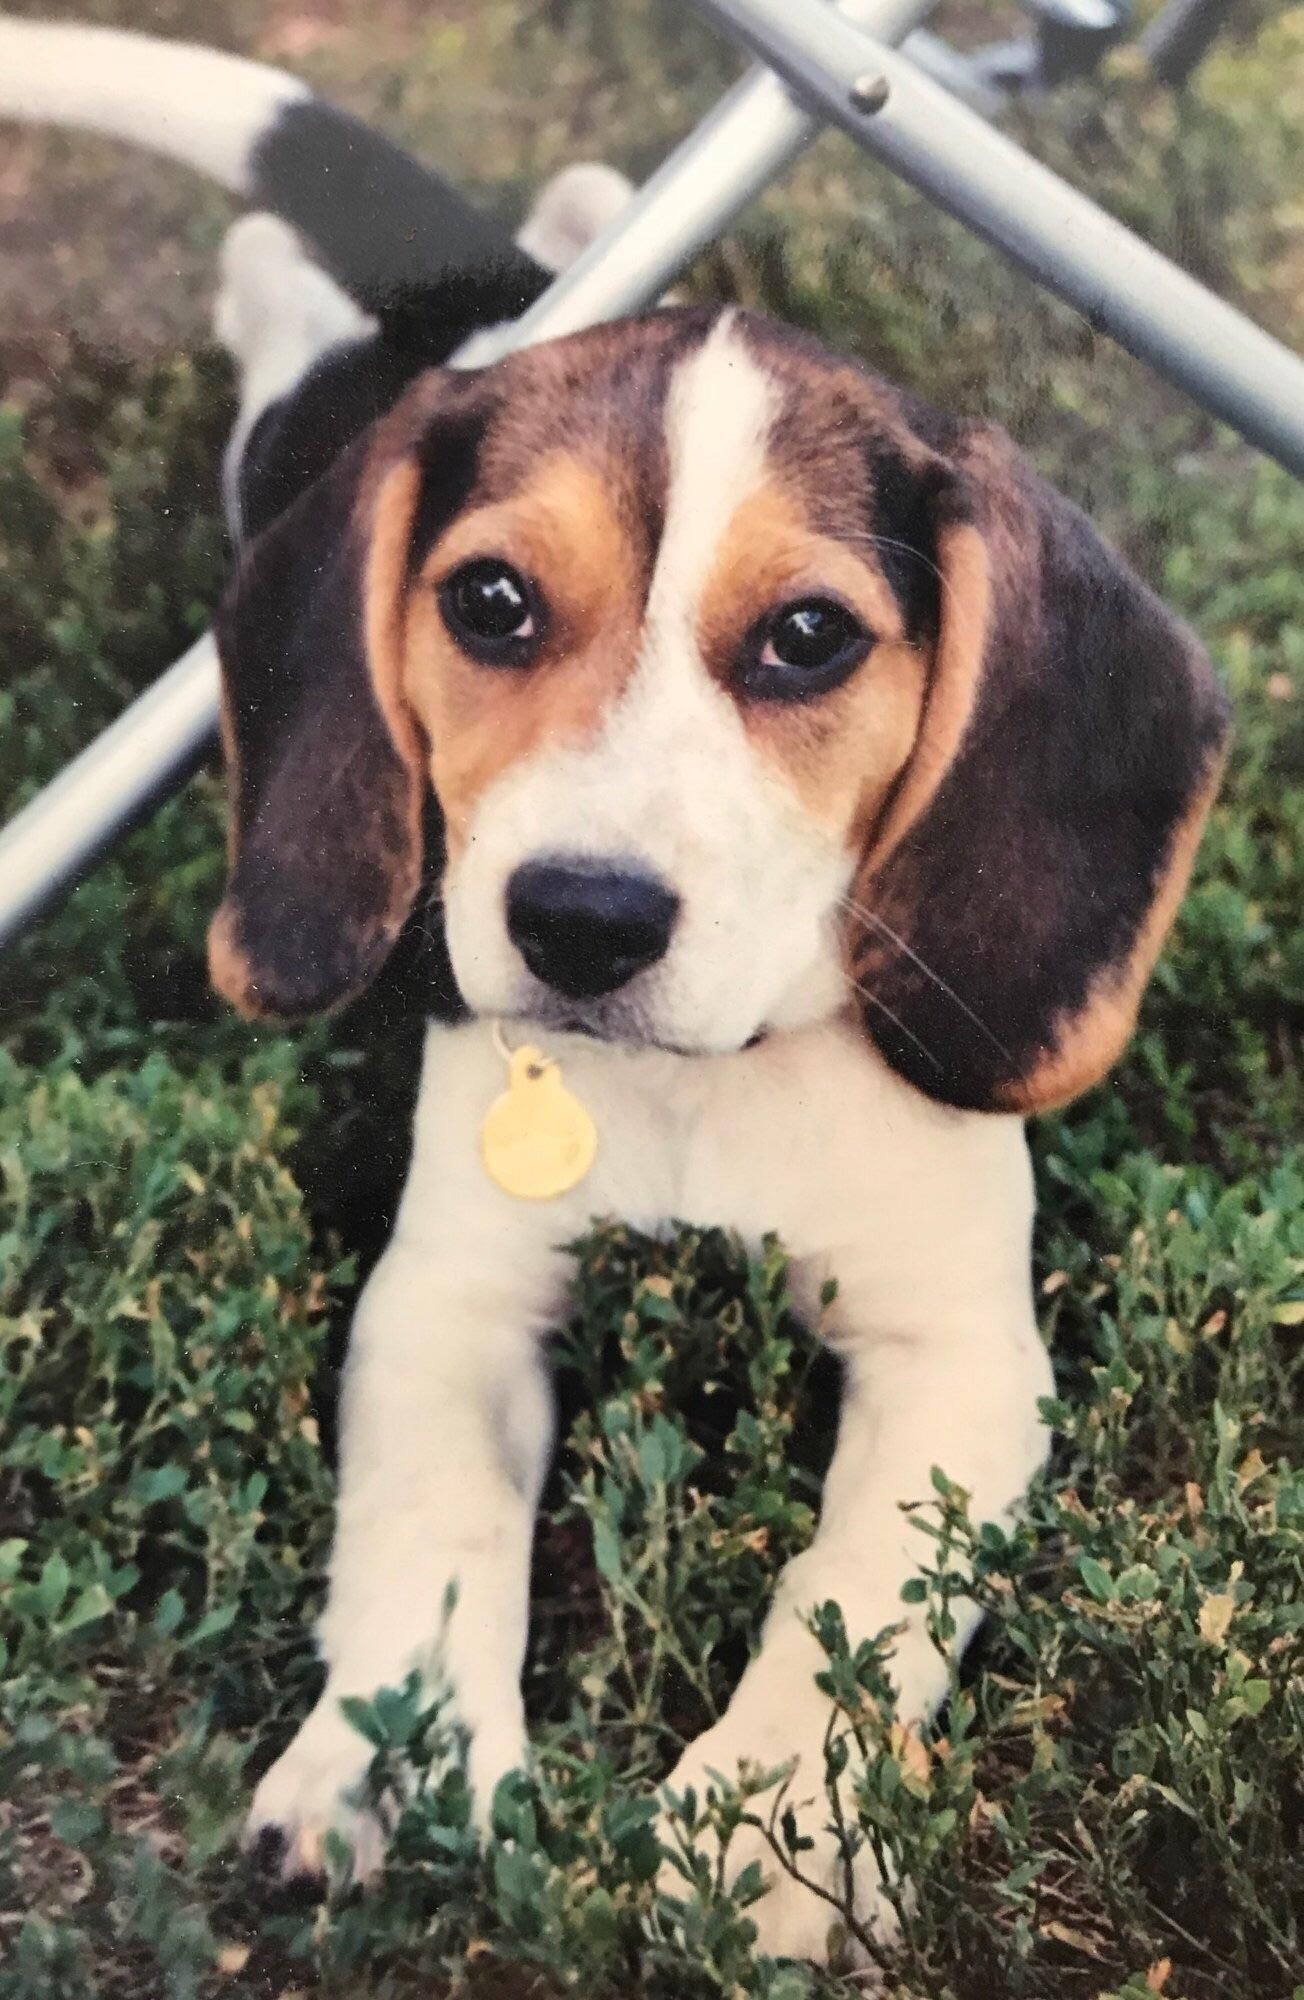 Pin By Generasi 90 On Puppies Best Photo Beagle Puppies Kittens